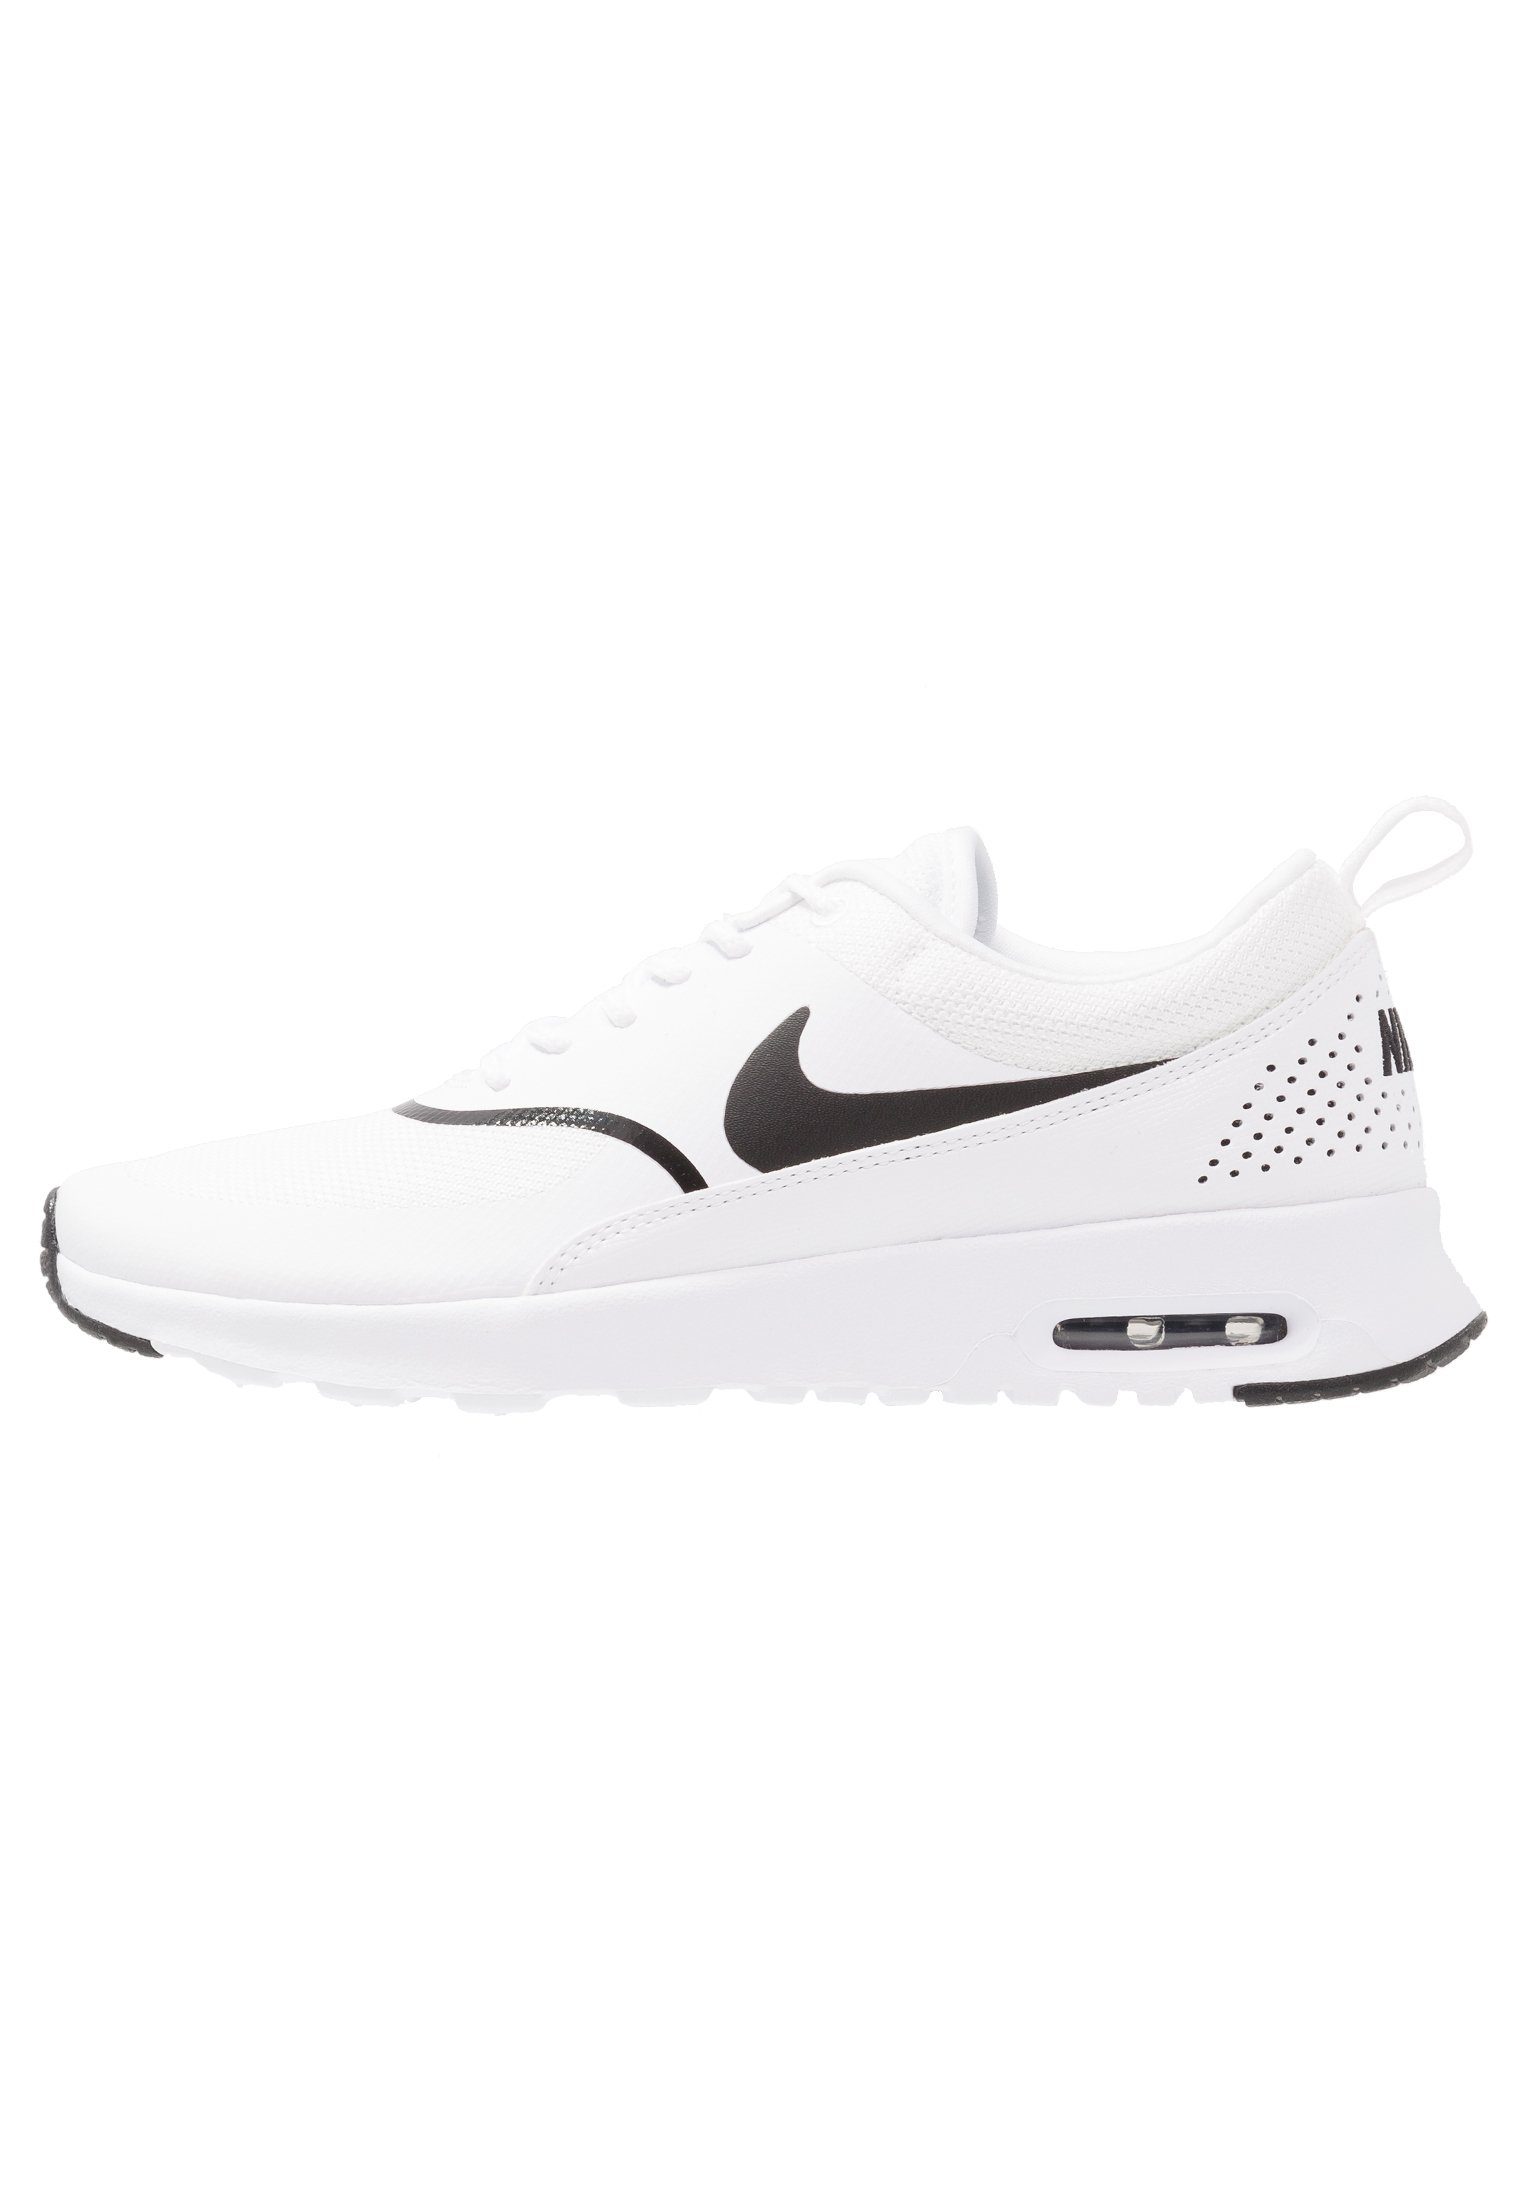 AIR MAX THEA Sneakers whiteblack